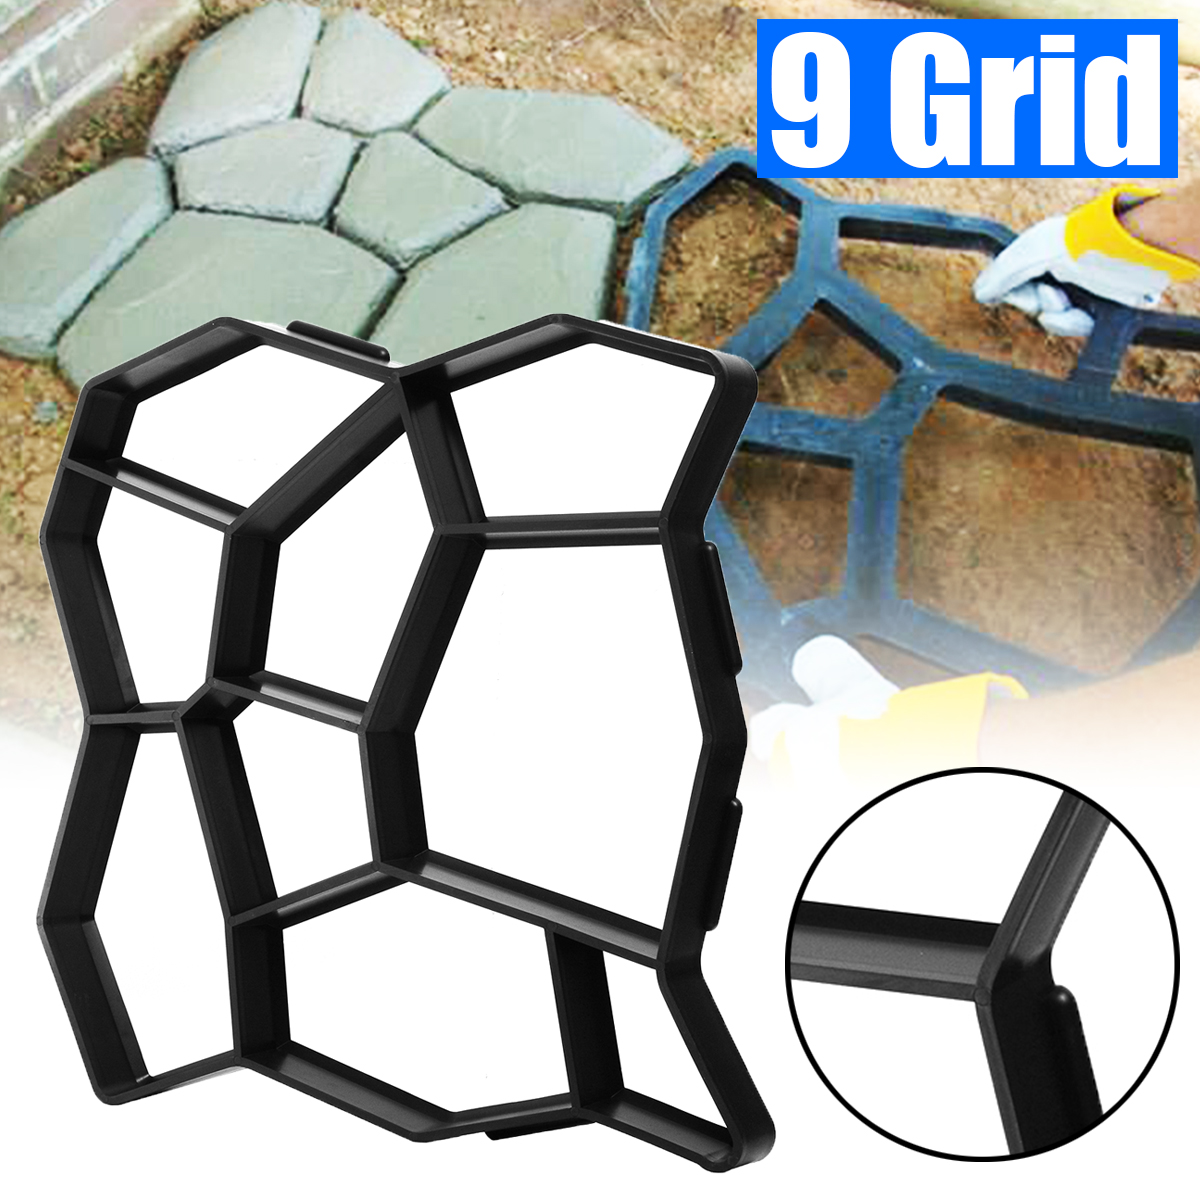 50 50 4 5cm DIY Paving Mold Stepping Stone Pavement Driveway Patio Paver Path Maker Floor Garden Design in Paving Molds from Home Garden